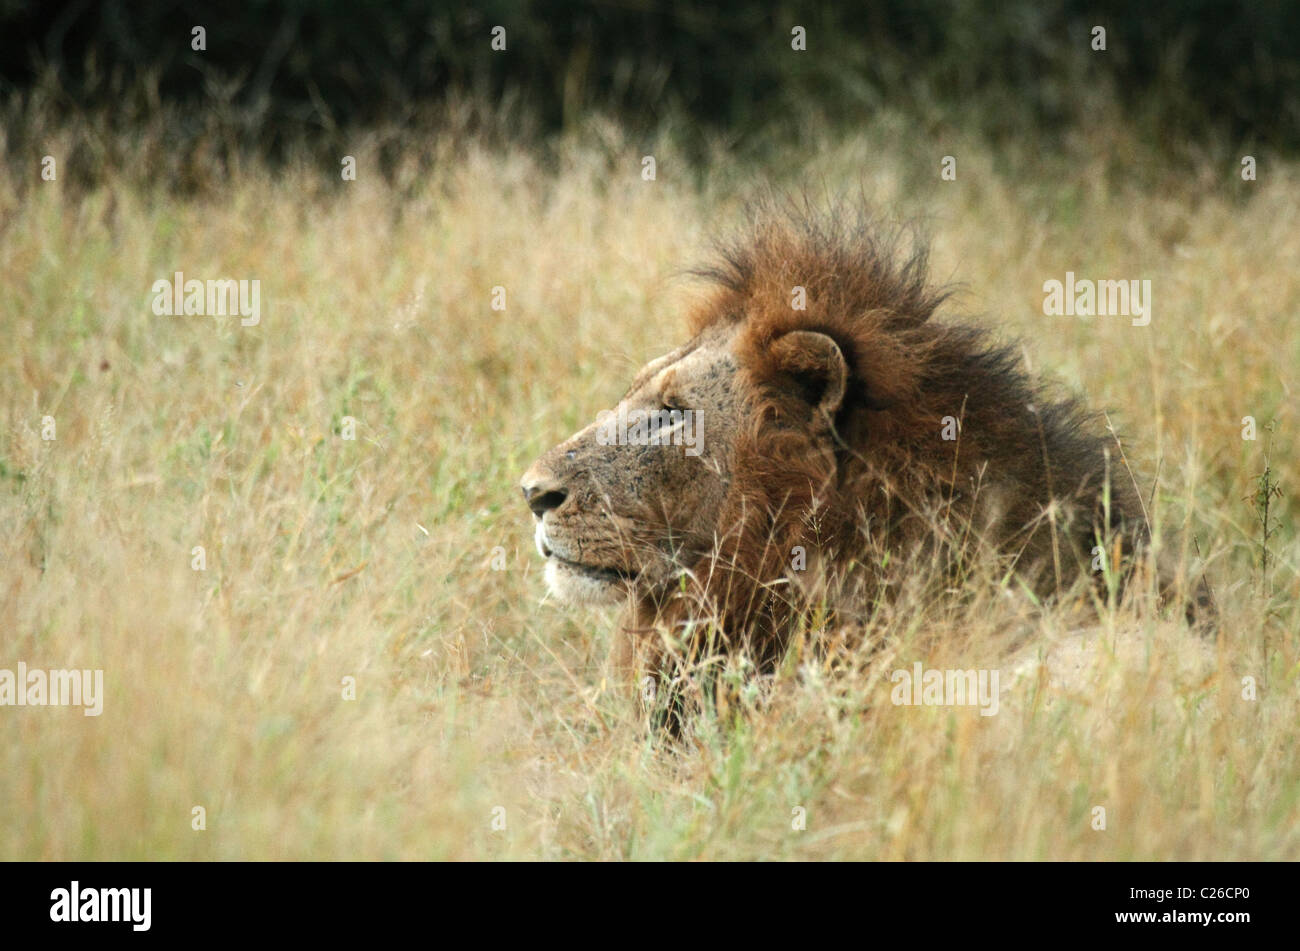 Lion, male head shot in long grass - Stock Image